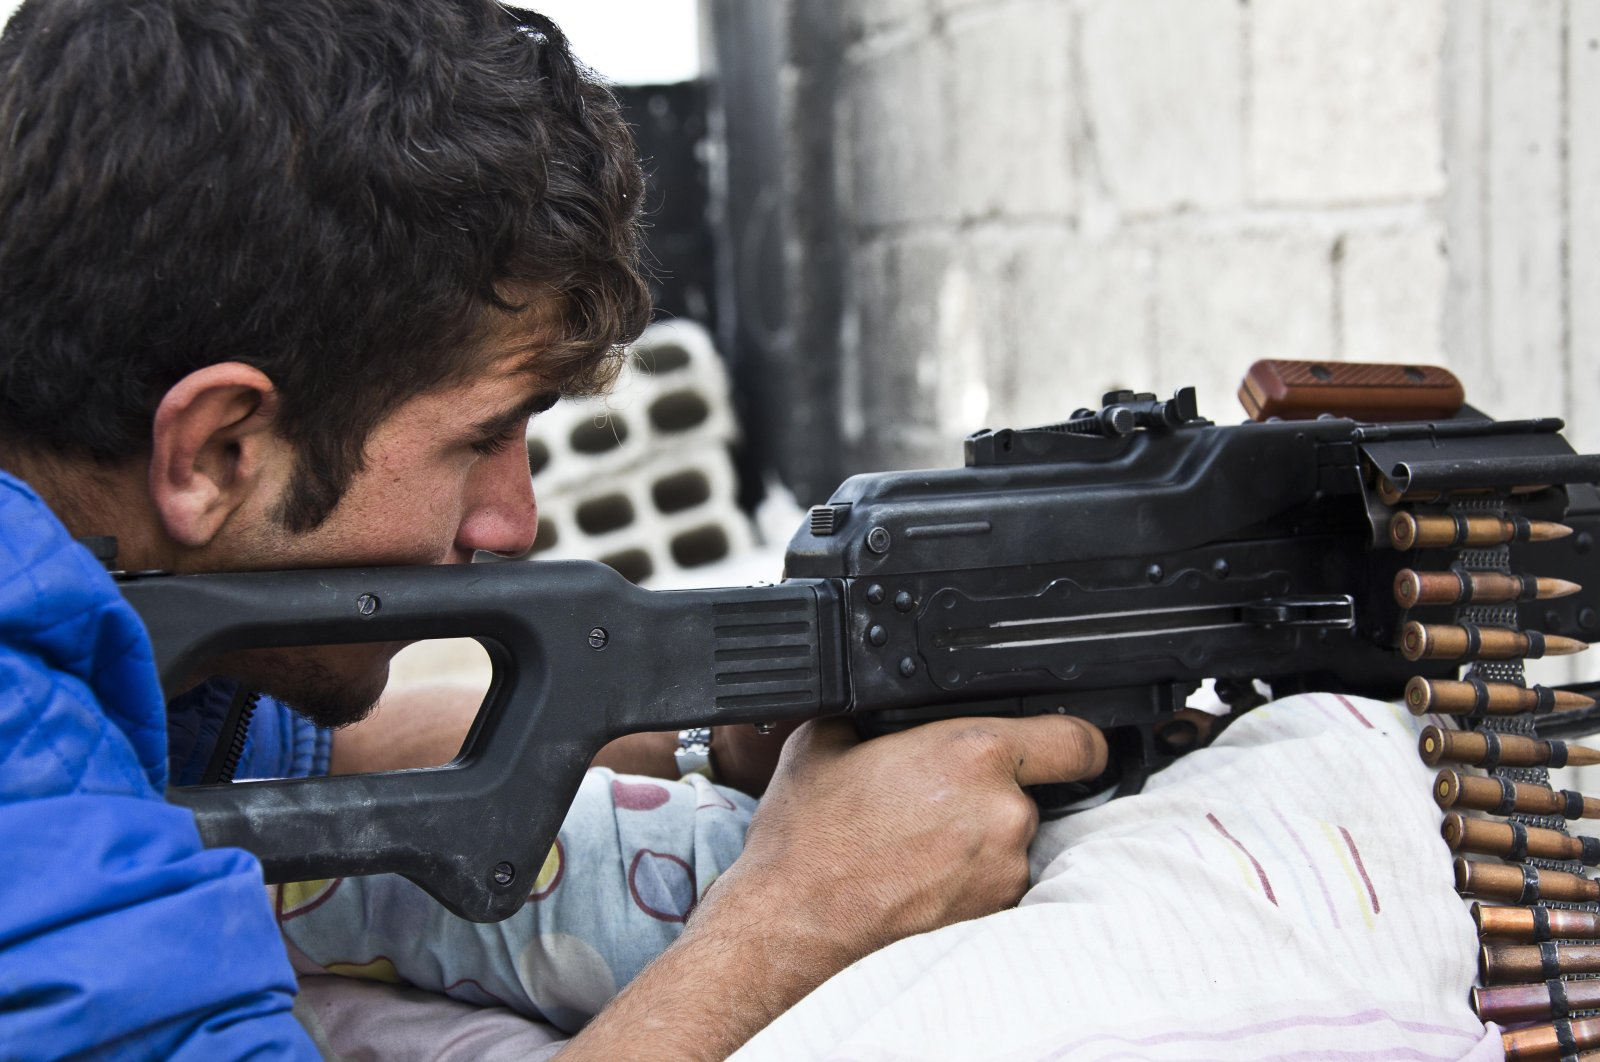 A young member of the YPG who recently volunteered for the terrorist group holds a position with his weapon in Kobani, Syria, Nov. 19, 2014. (AP Photo)